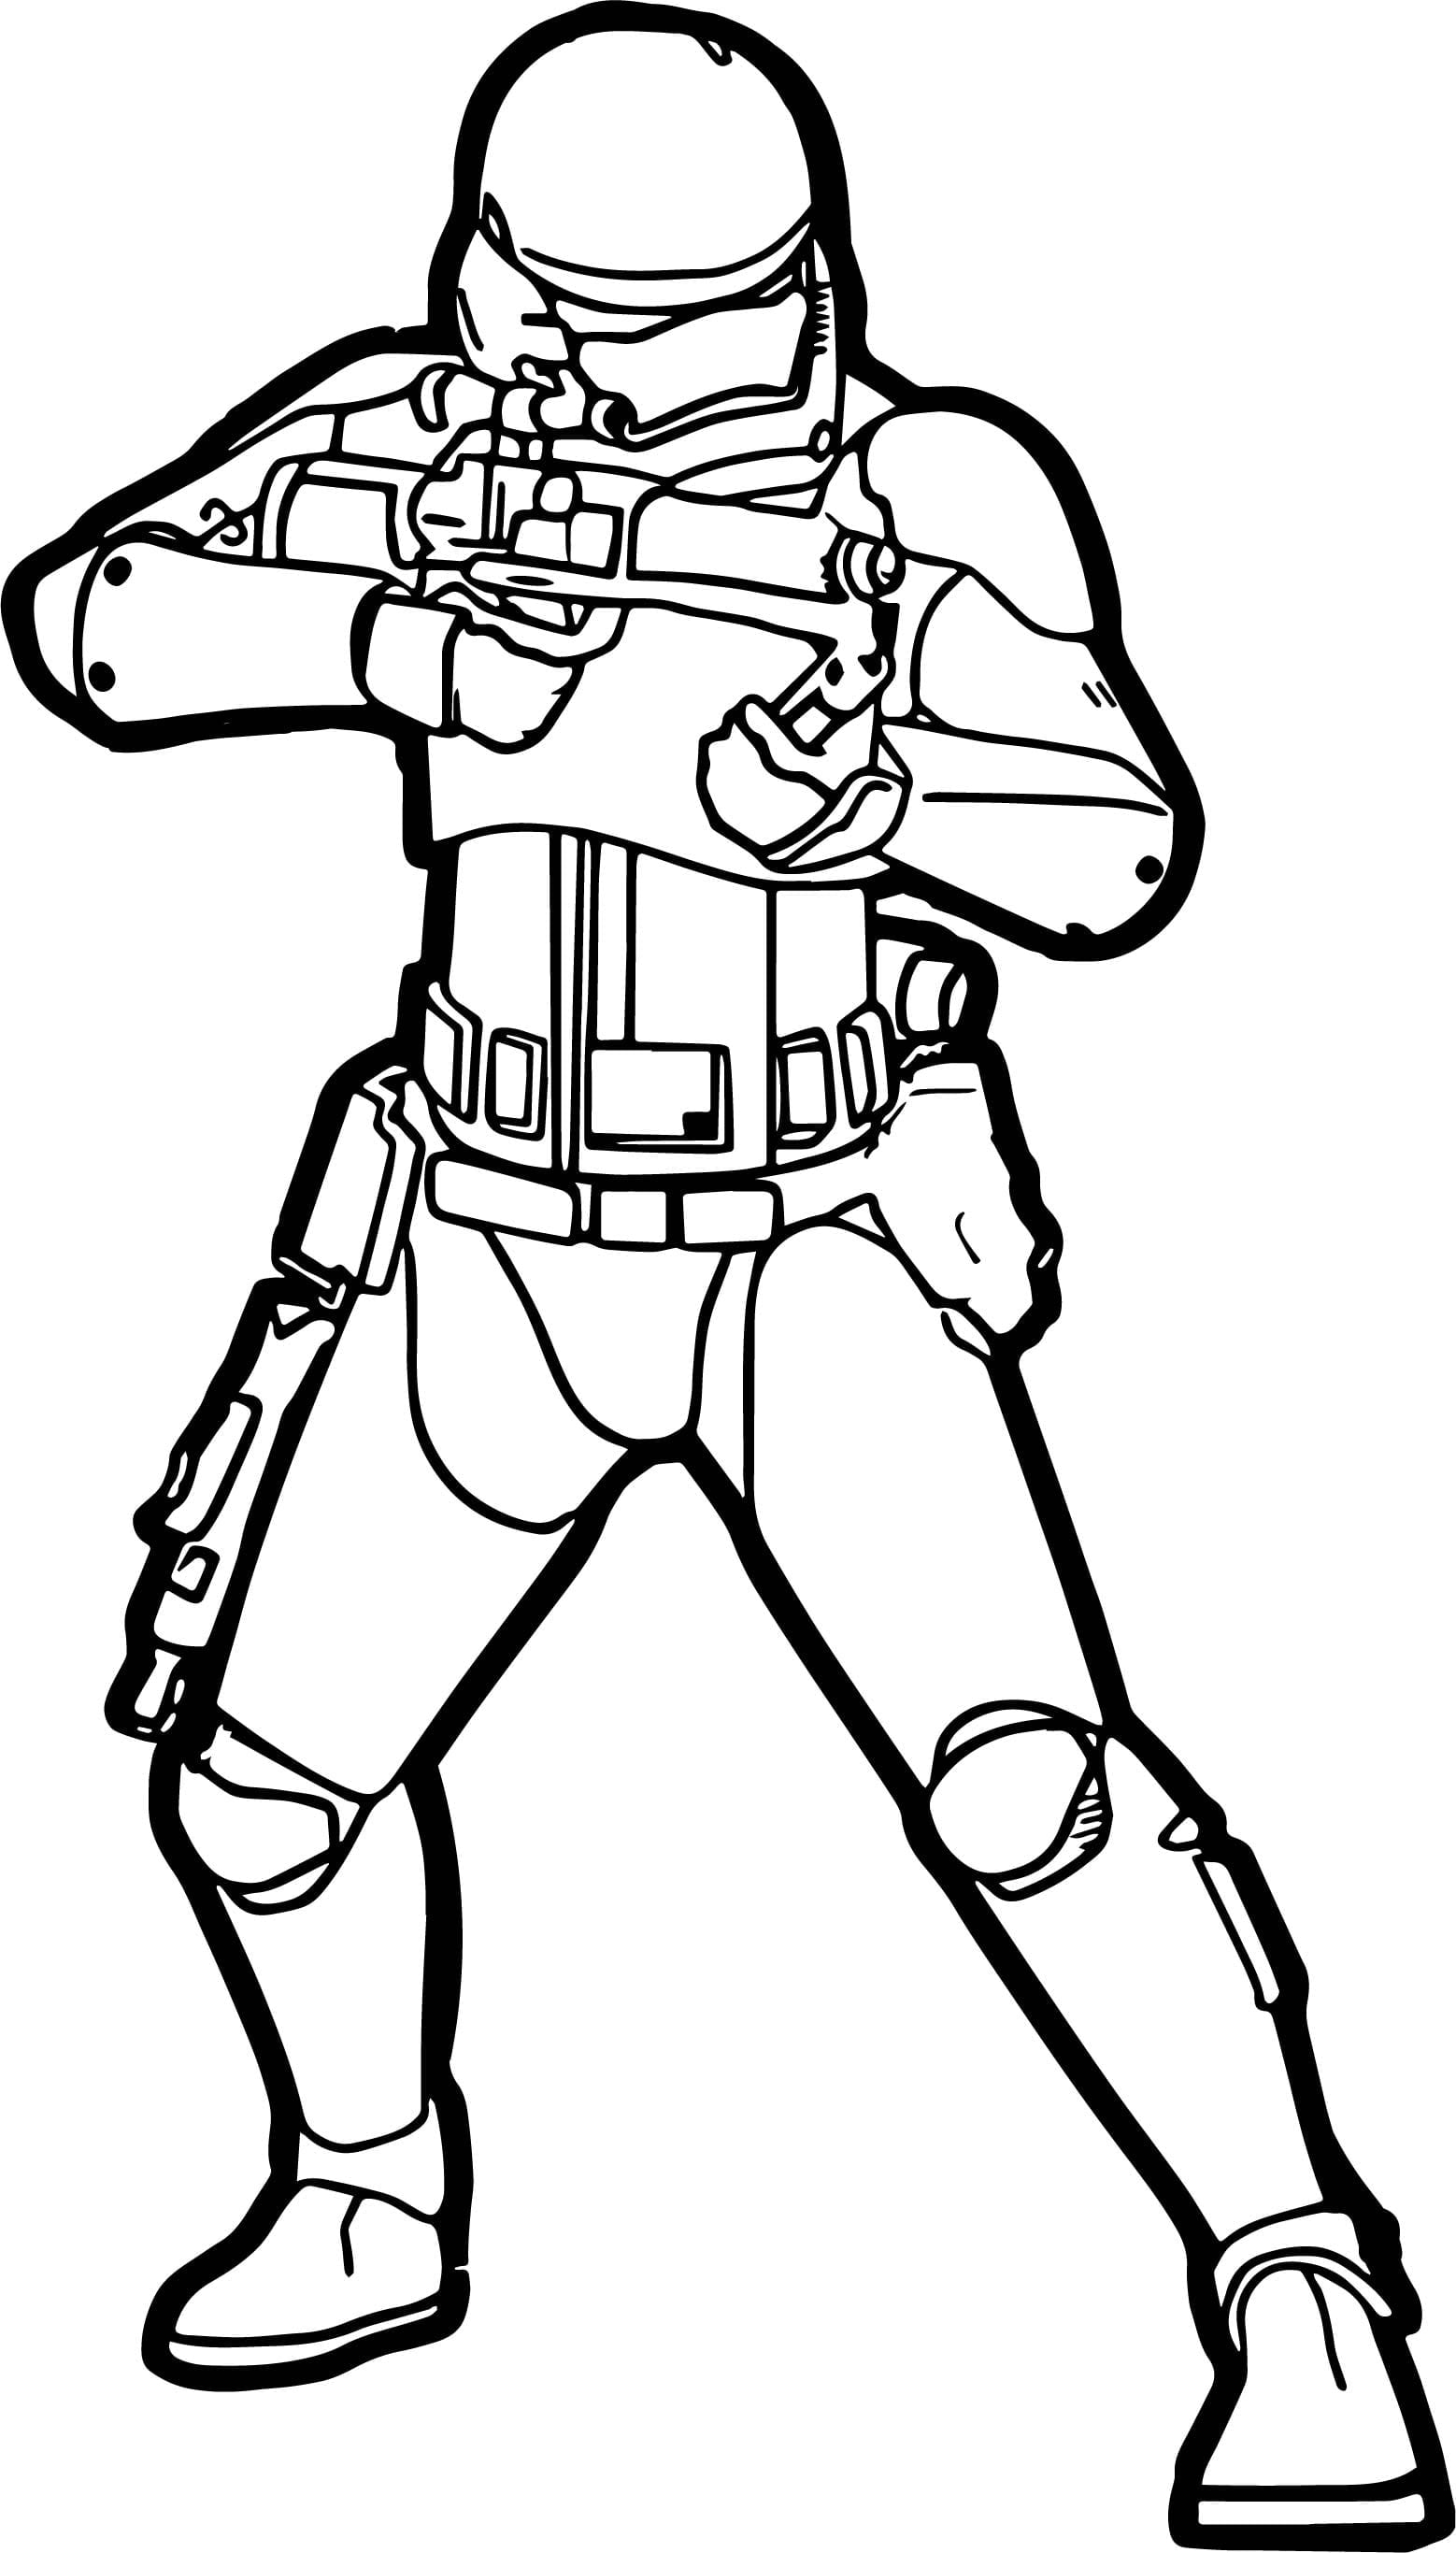 Extraordinary Star Wars Stormtrooper Coloring Pages With Showy